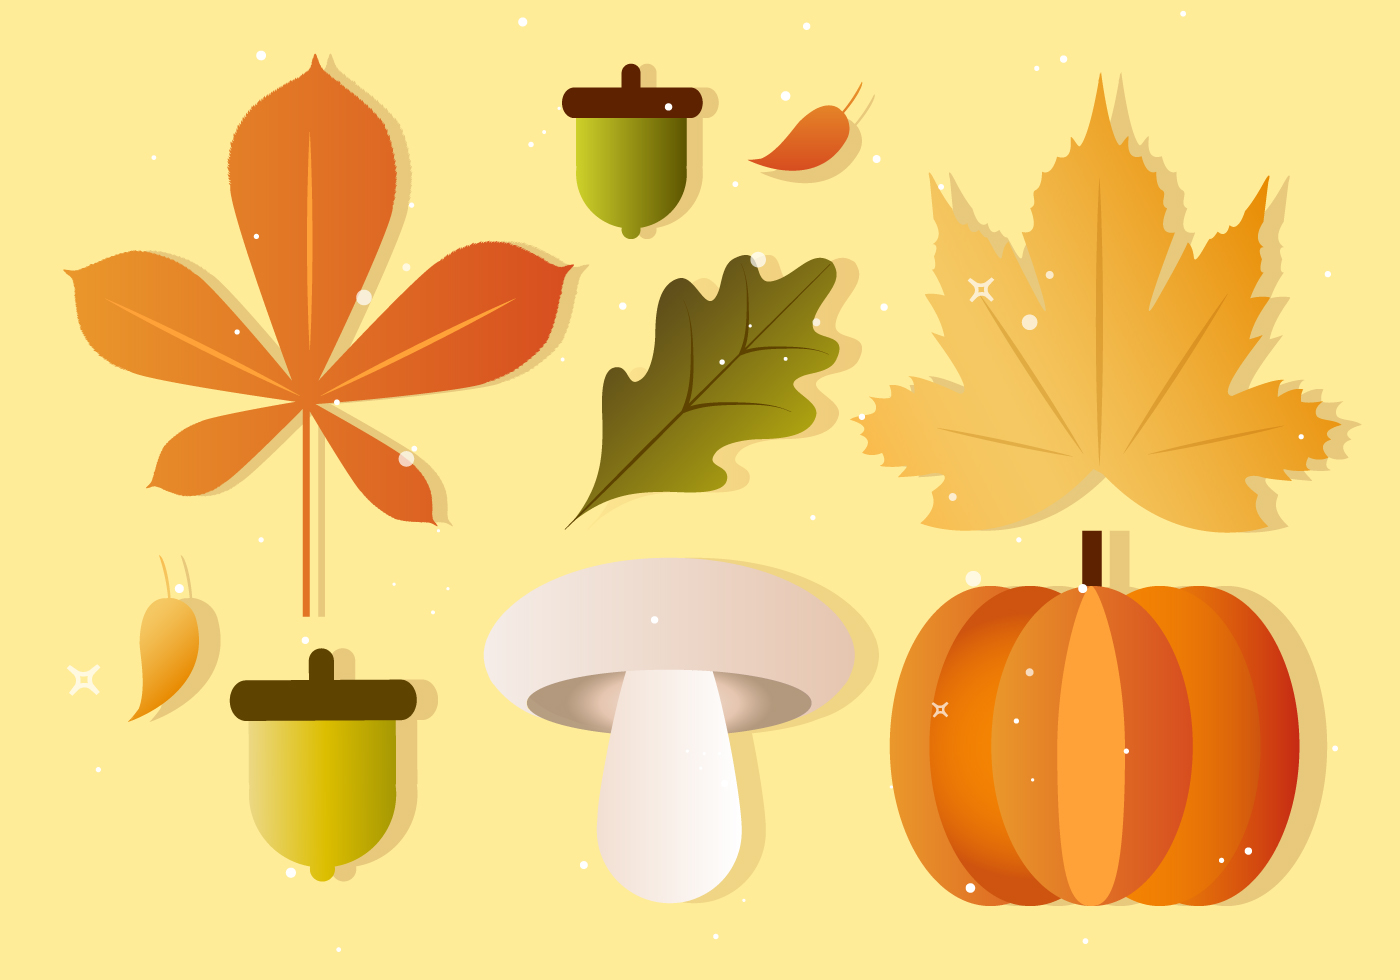 Free Vector Fall Autumn Elements Download Free Vector